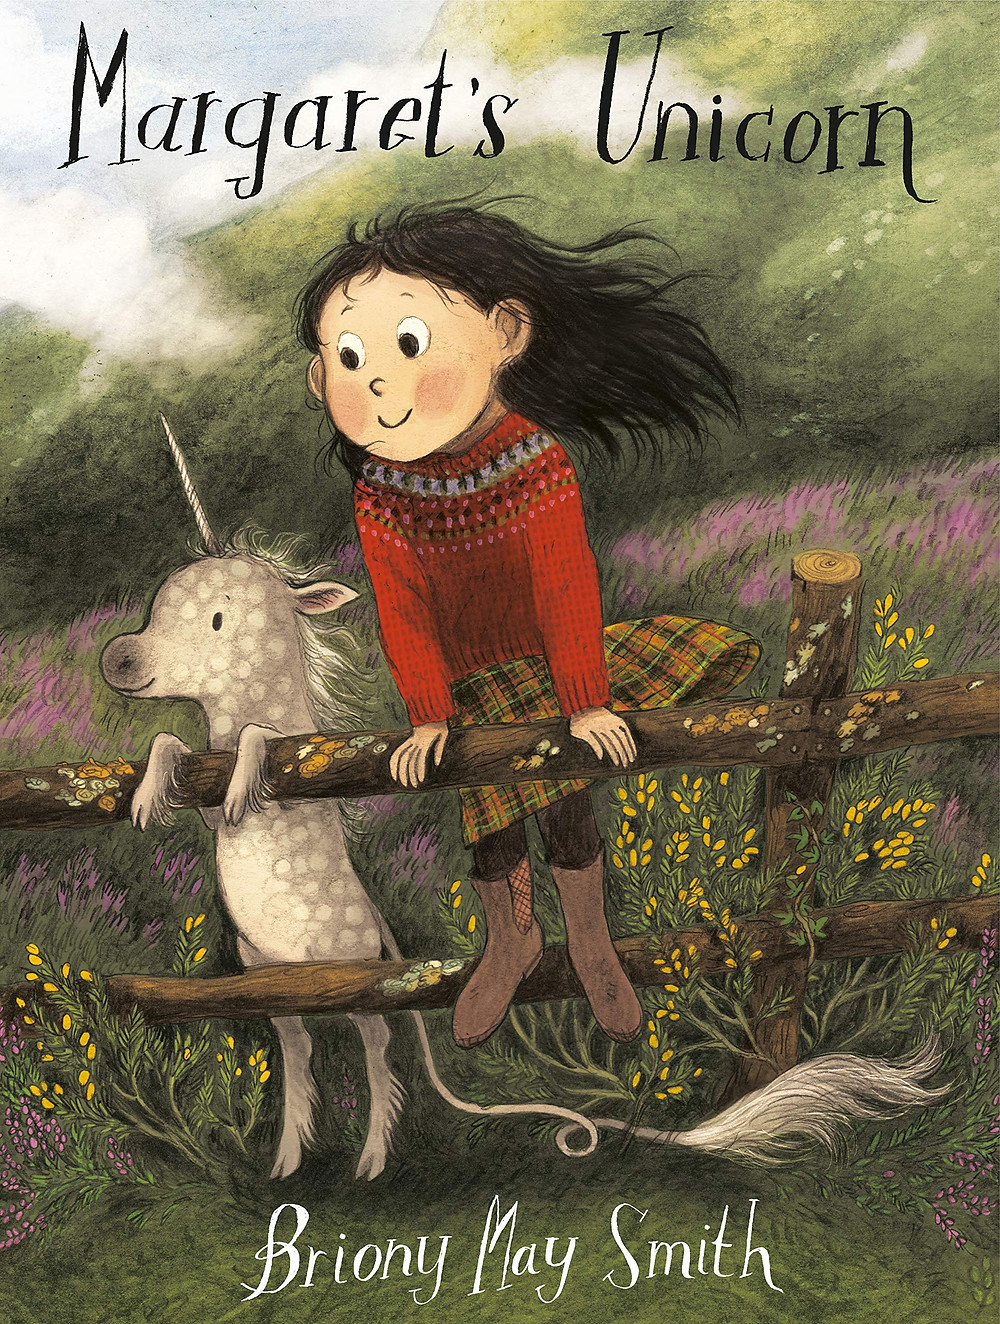 Margaret's Unicorn by Briony May Smith, Walker